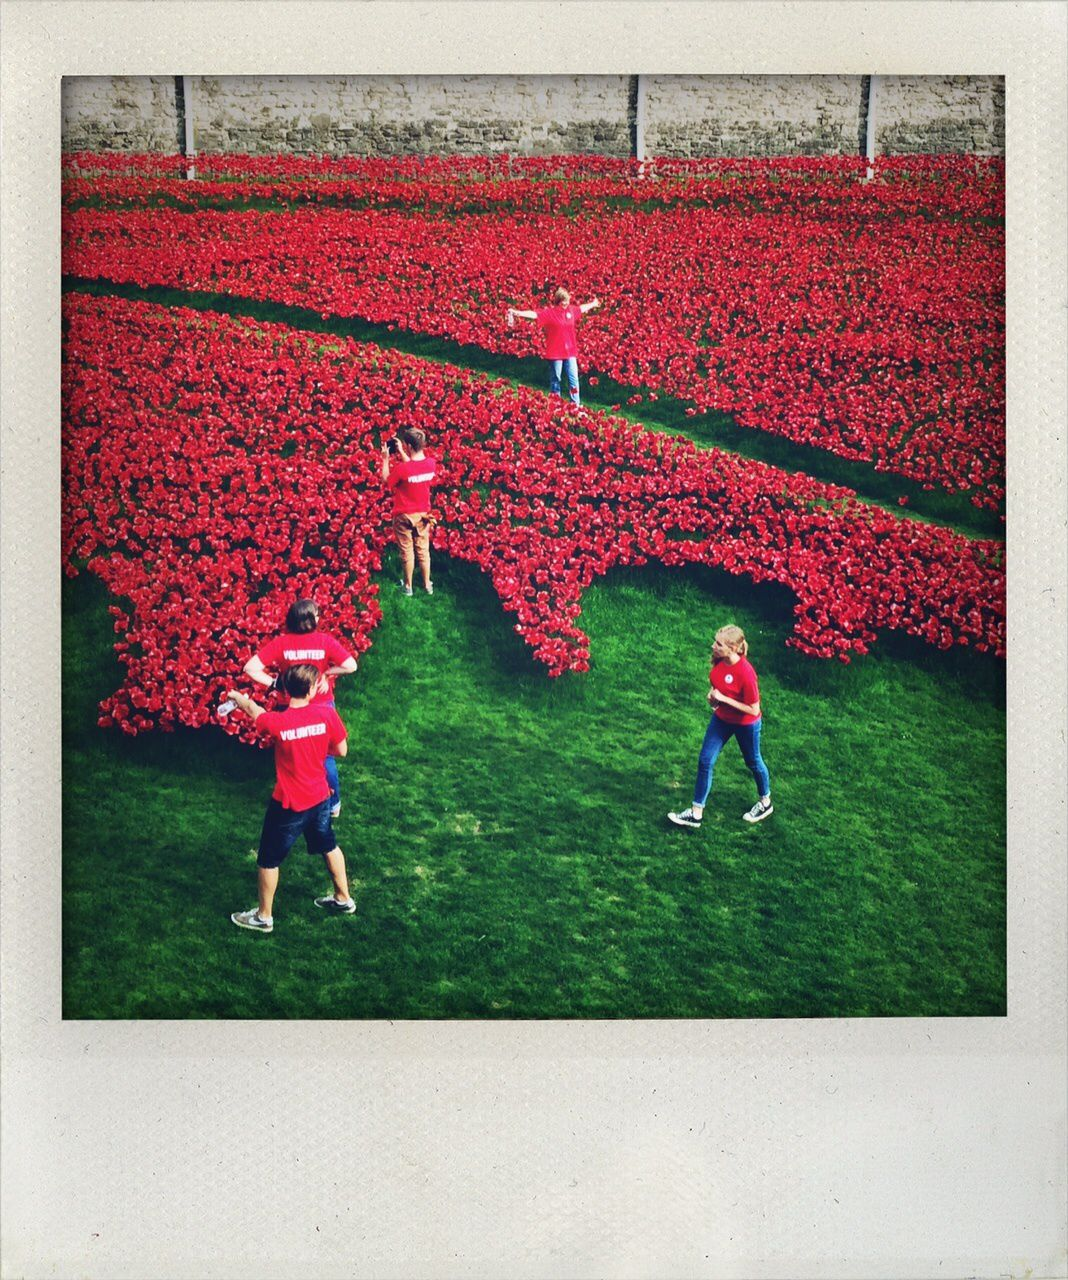 Poppies and volunteers